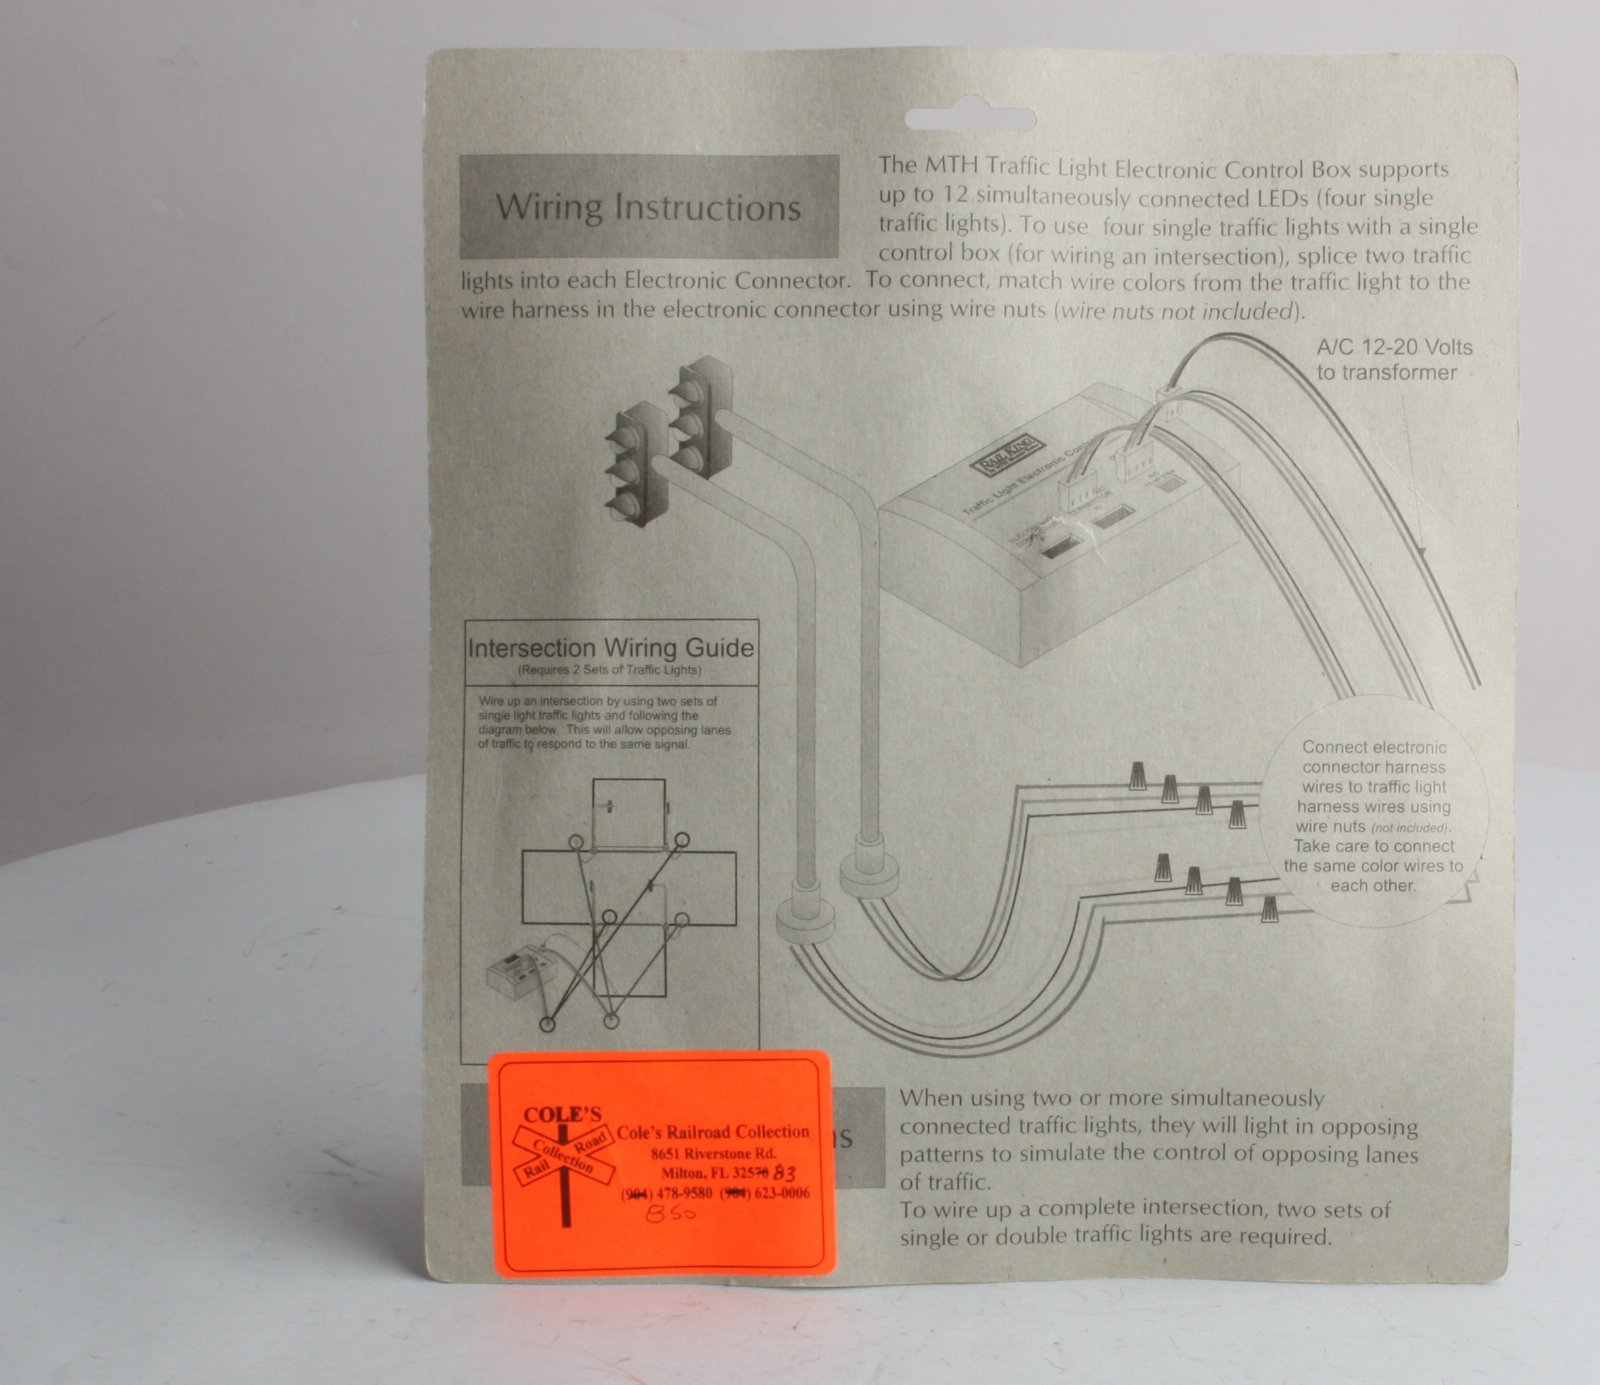 Mth Transformer Wiring Diagram Library Intersection 30 1089 1 Operating Traffic Light Set Nib 658081e 11